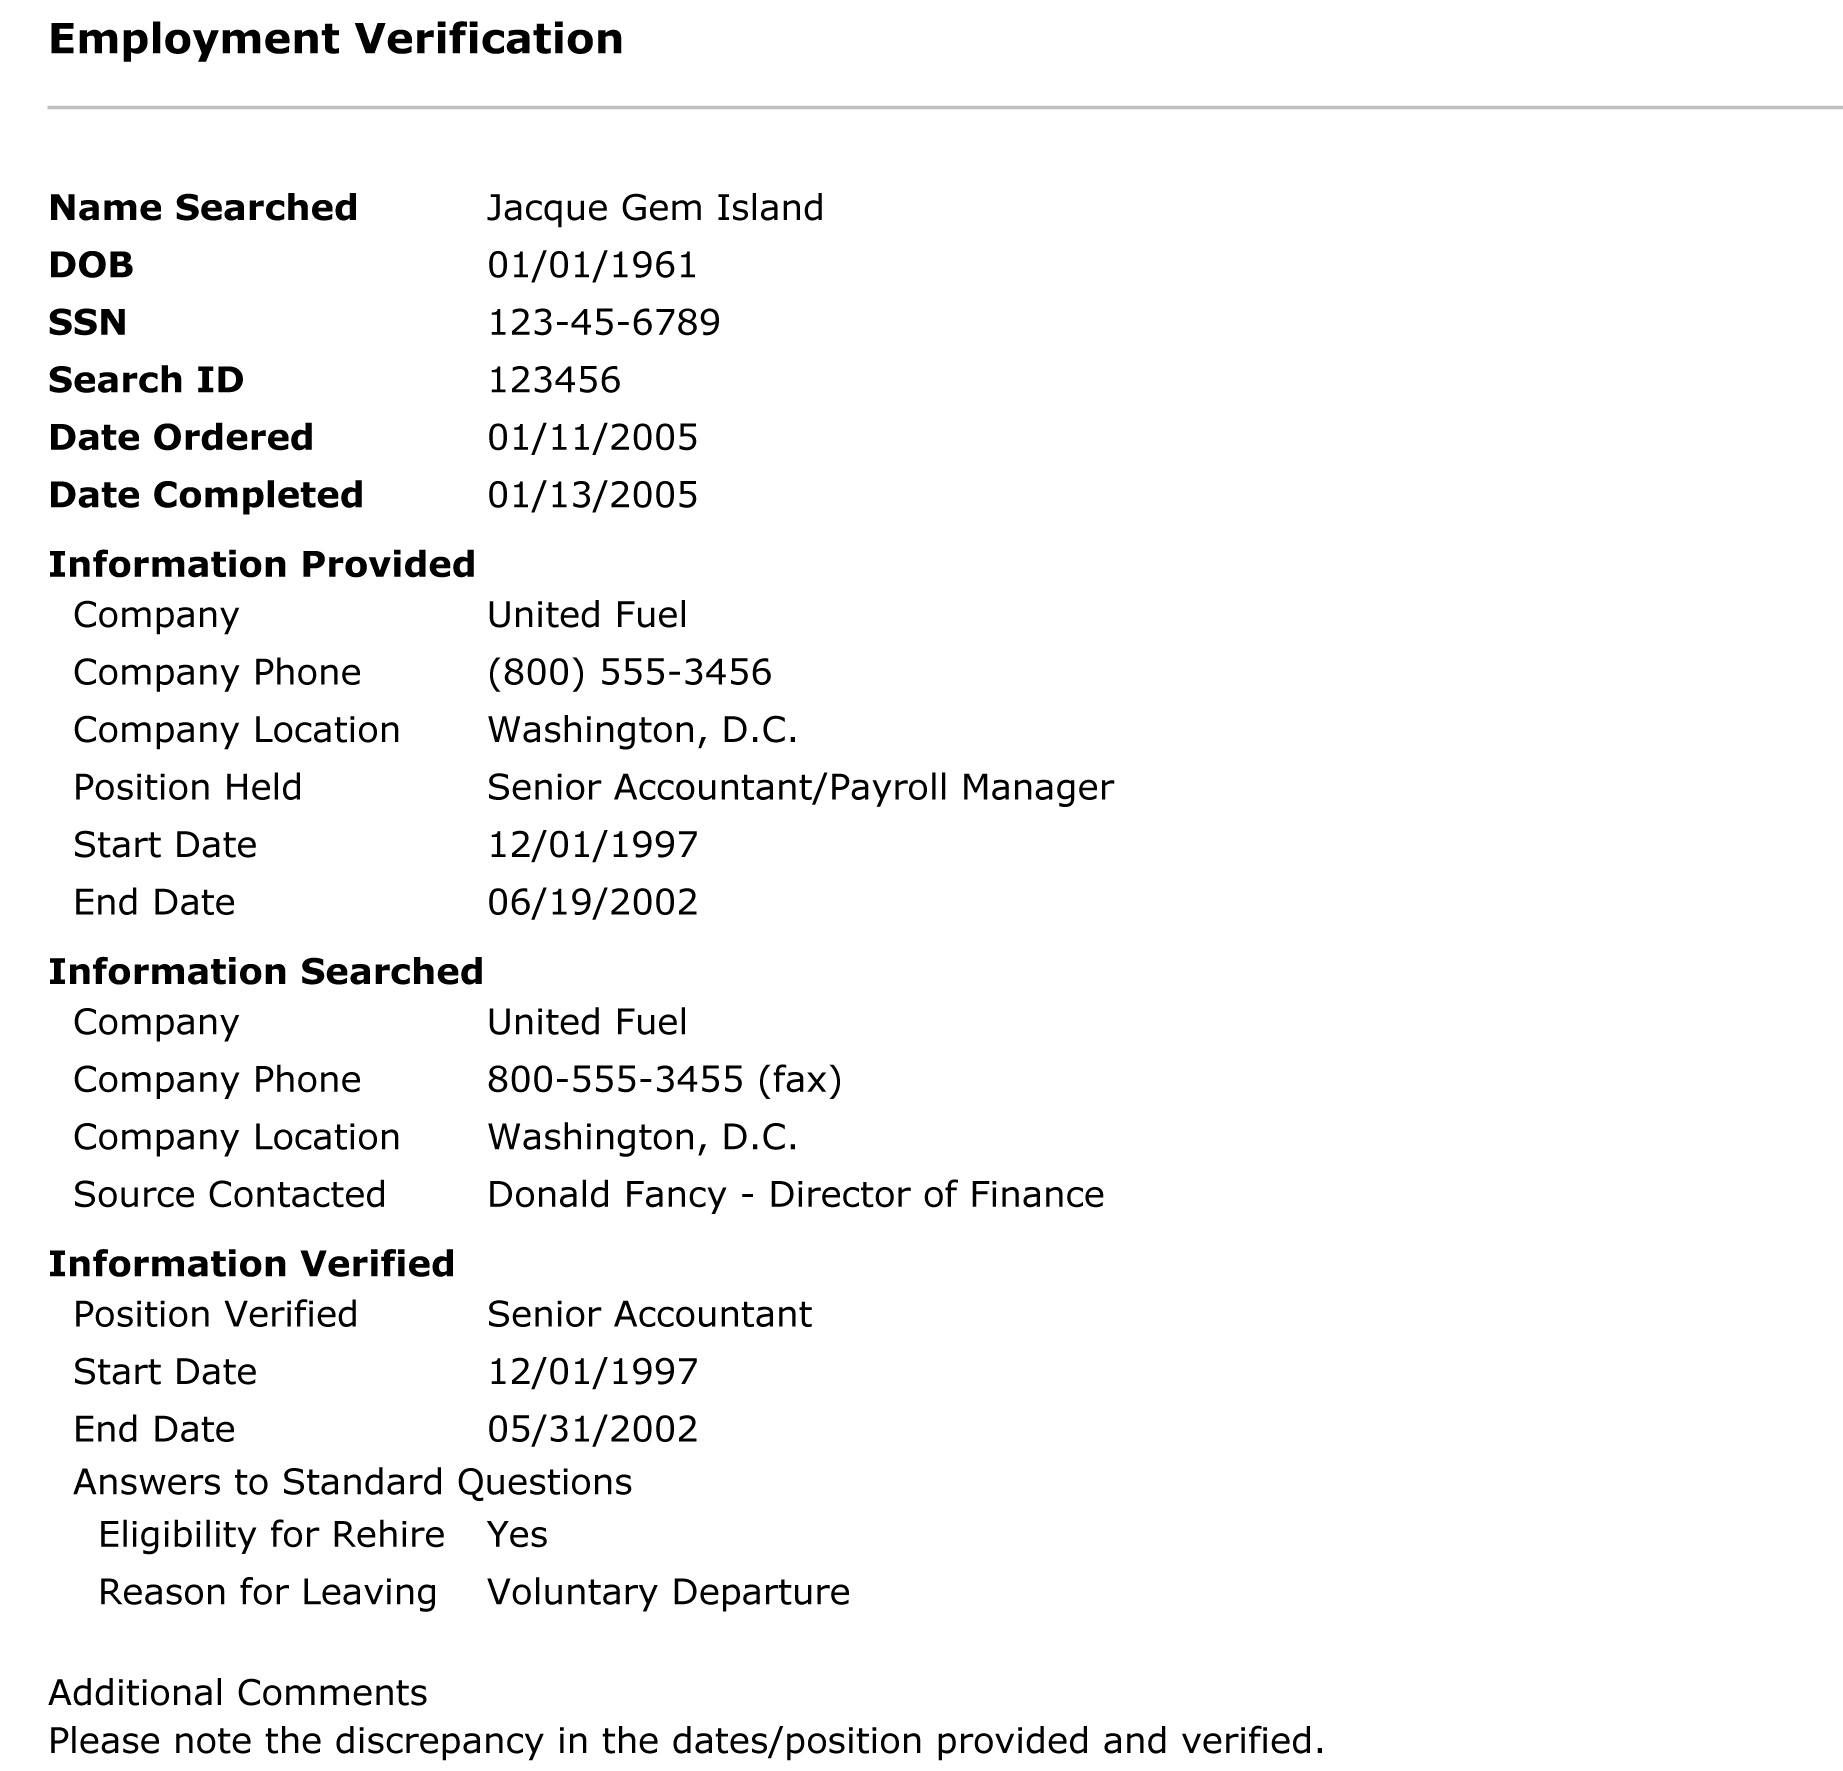 Employment Verification Form Sample Universal Background Screening  Employment History 21